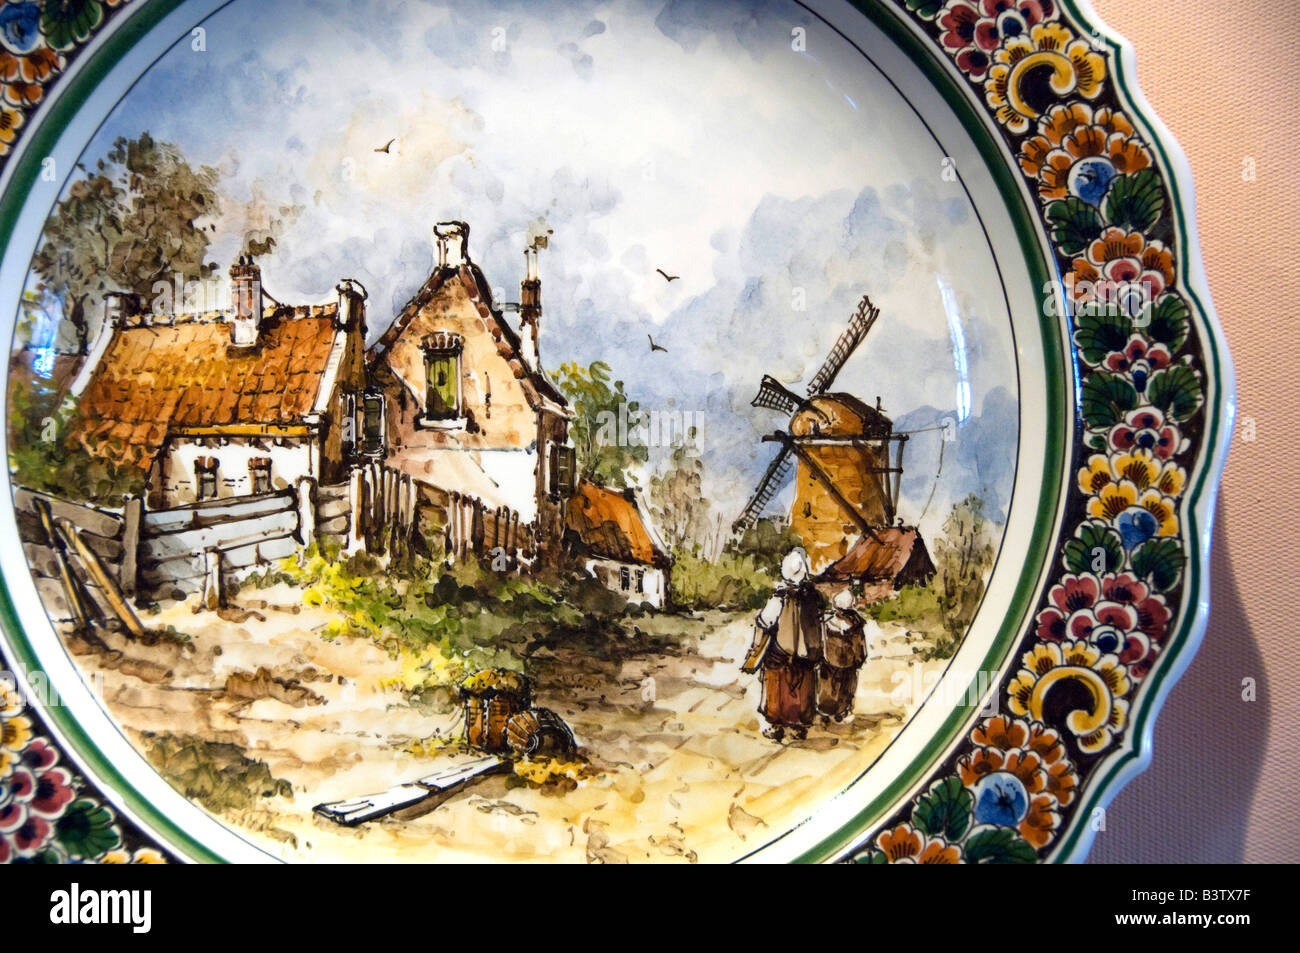 Europe, The Netherlands (aka Holland), Delft. Royal Delft Factory since 1653. Delft pottery store. - Stock Image